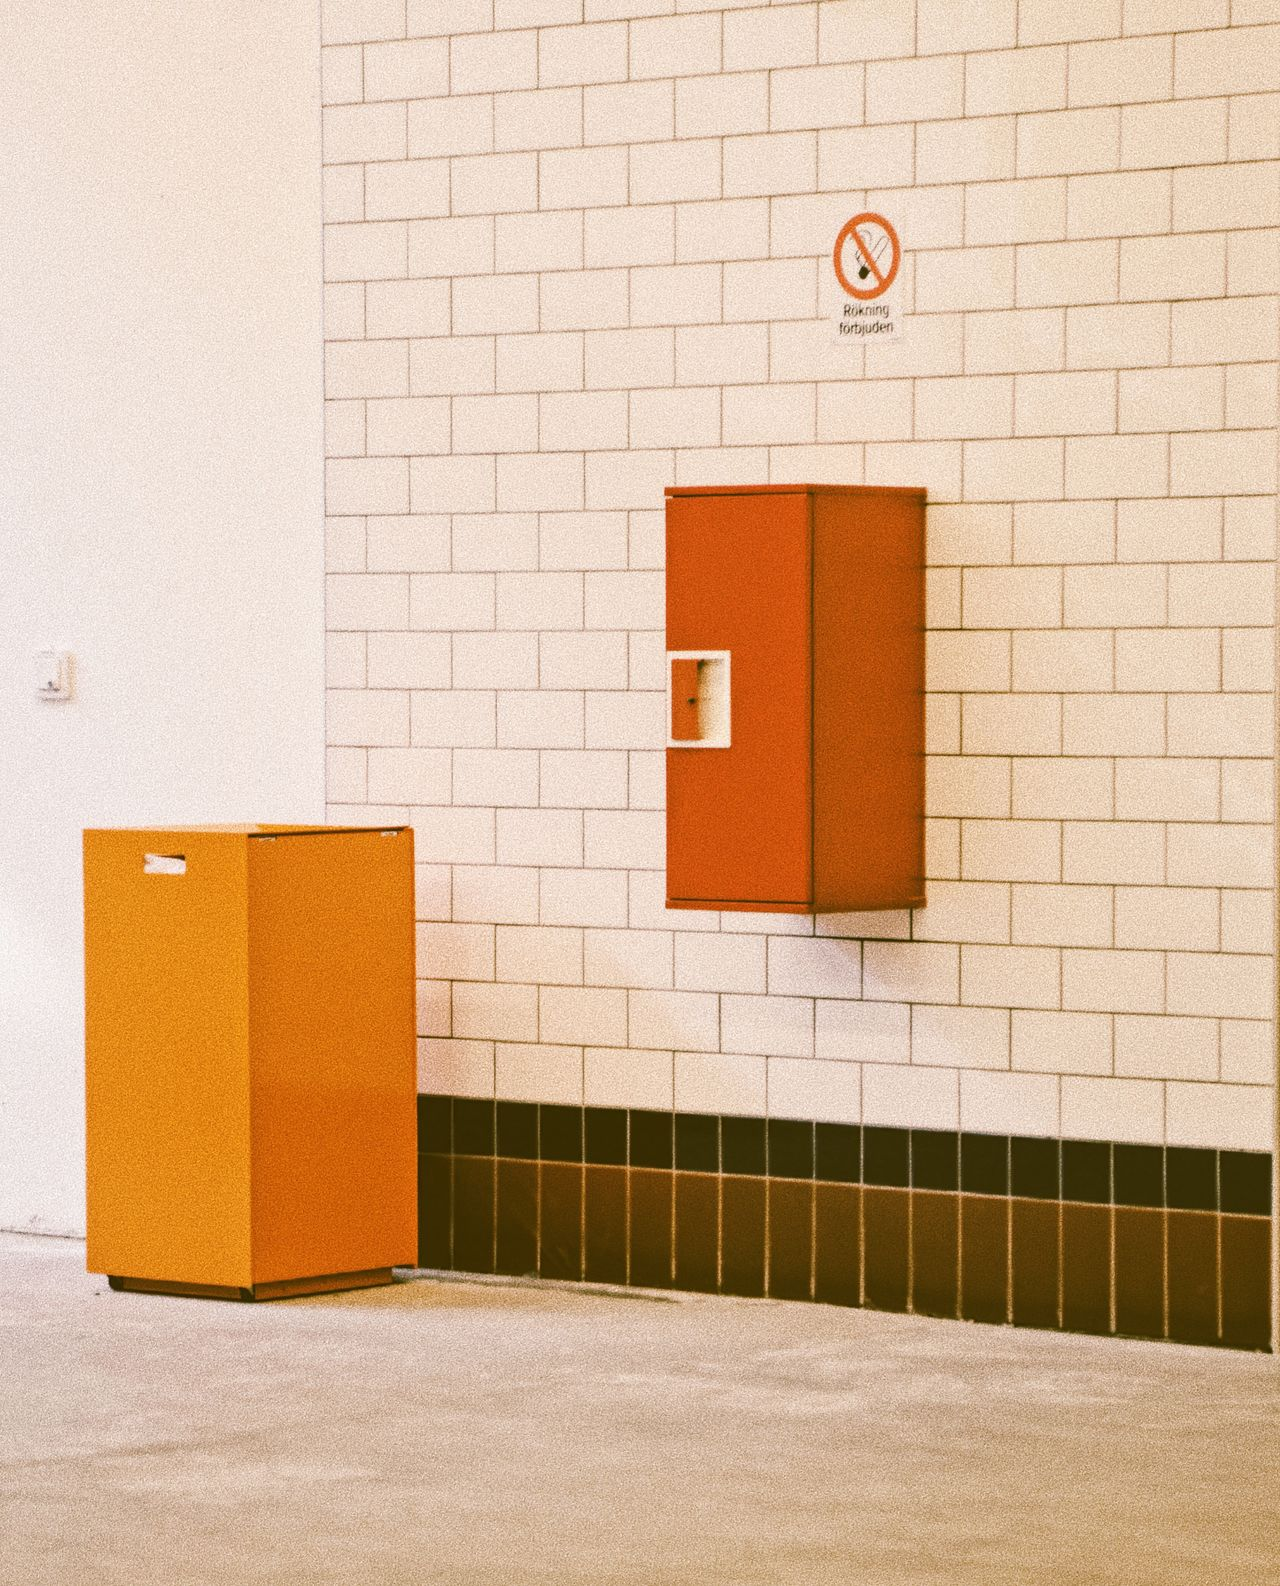 Built Structure Red No People Architecture Indoors  Day Wall Detail Still Life Simplicity Abstract Rectangles Red Orange Color White White Color Walls Squares Public Places Architecture Background Wall Art Minimalism Minimalistic